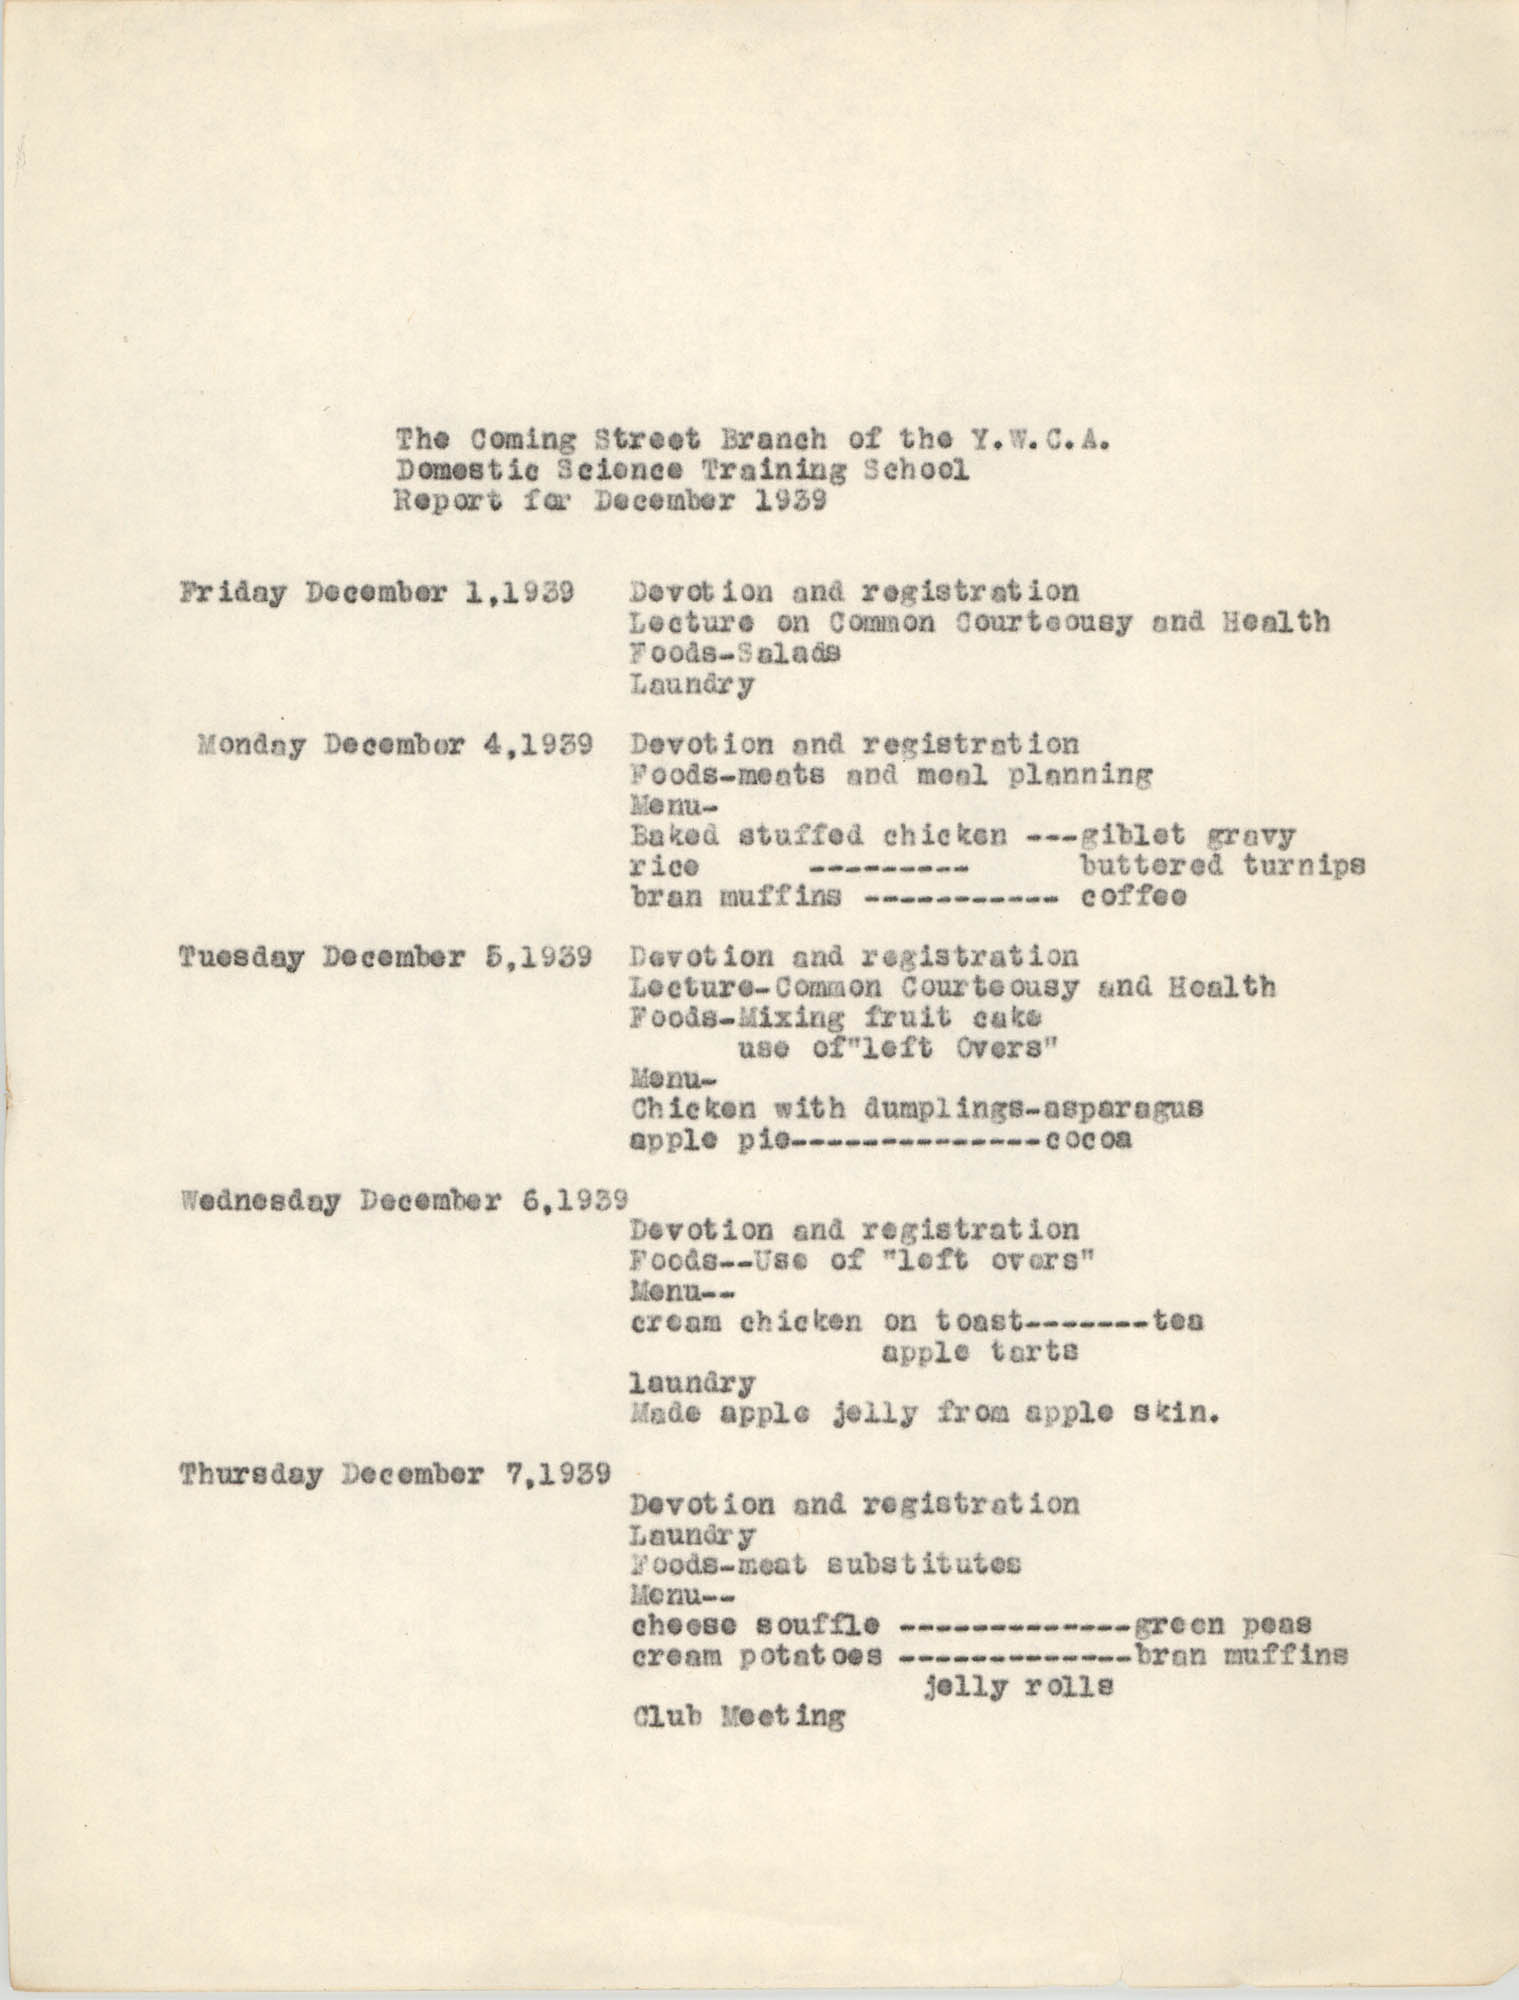 Monthly Report for the Coming Street Y.W.C.A., Domestic Science Training School, December 1939, Page 1